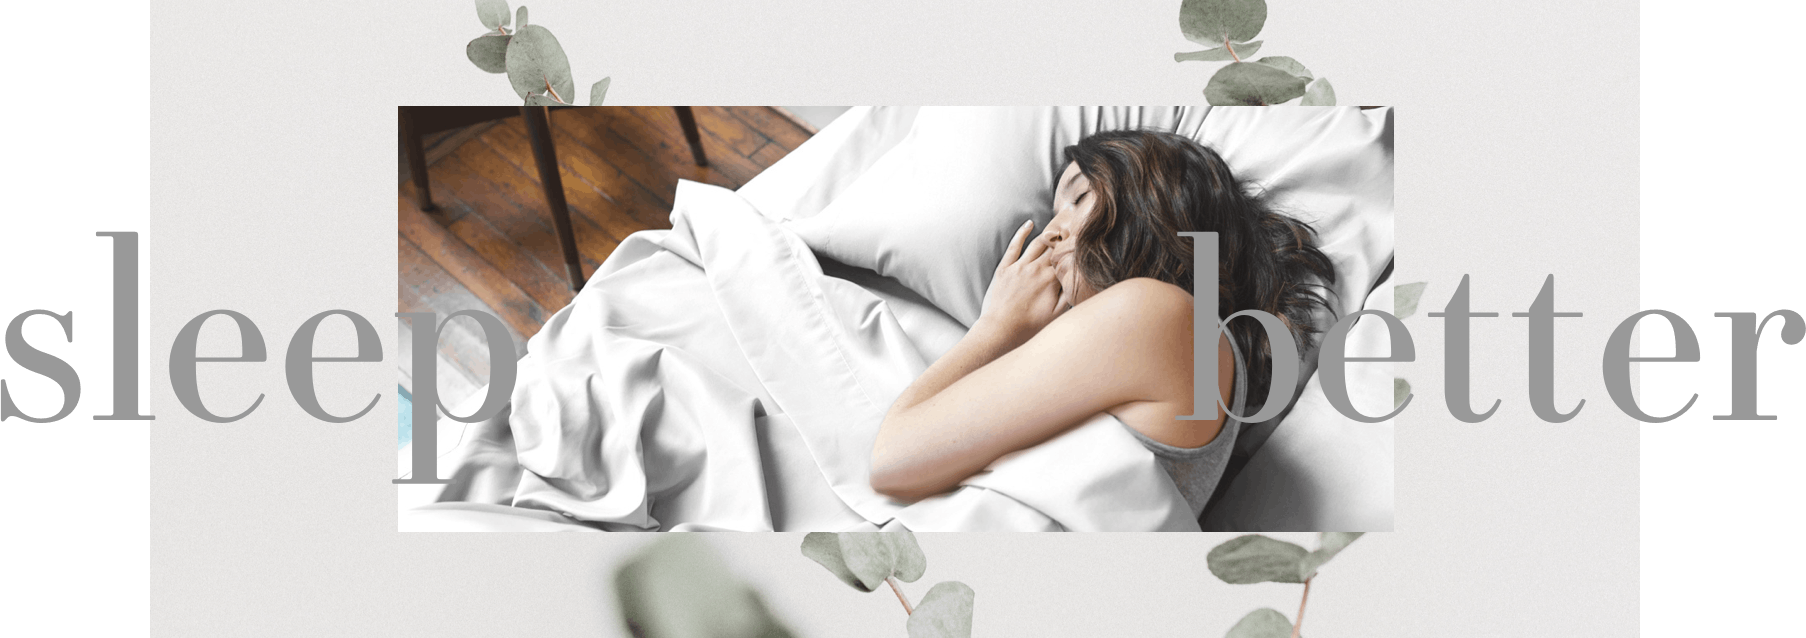 sleep better quiz desktop